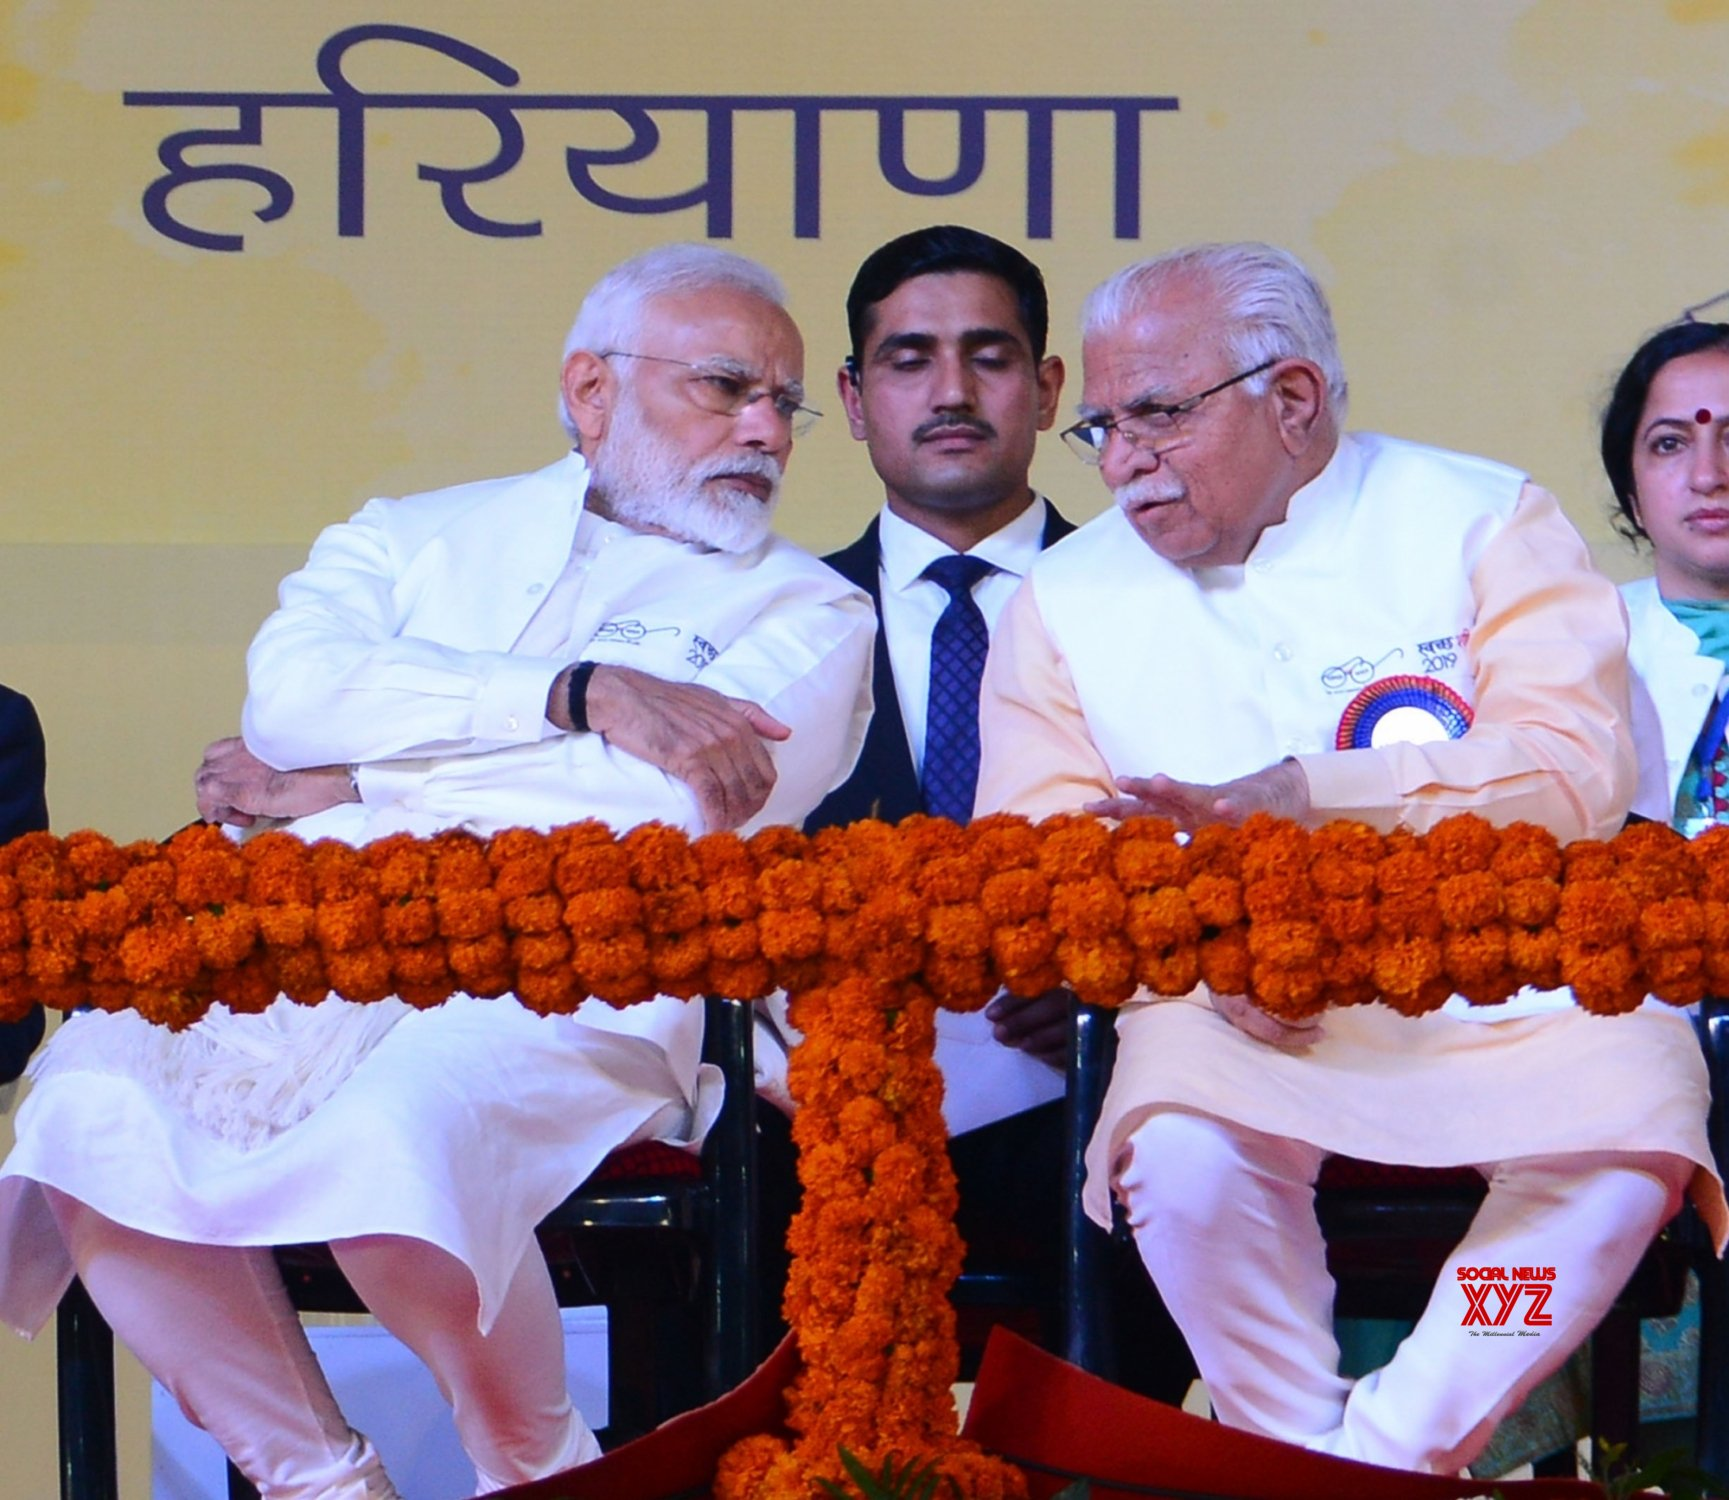 Kurukshetra: Modi launches Swachh Shakti - 2019 in HAryana #Gallery